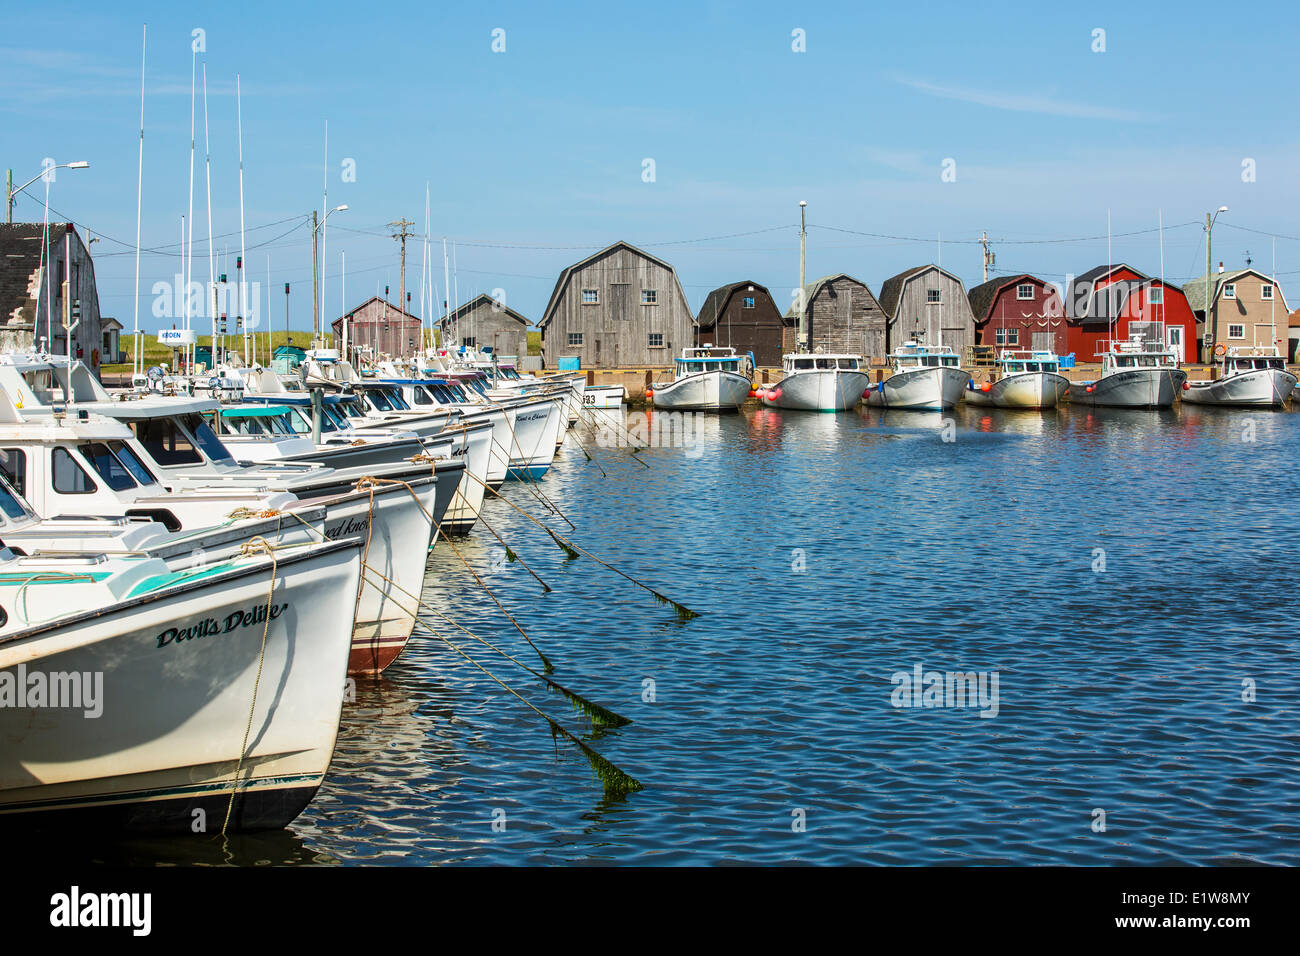 Fishing boats tied up at Malpeque Harbour wharf, Prince Edward Island, Canada - Stock Image